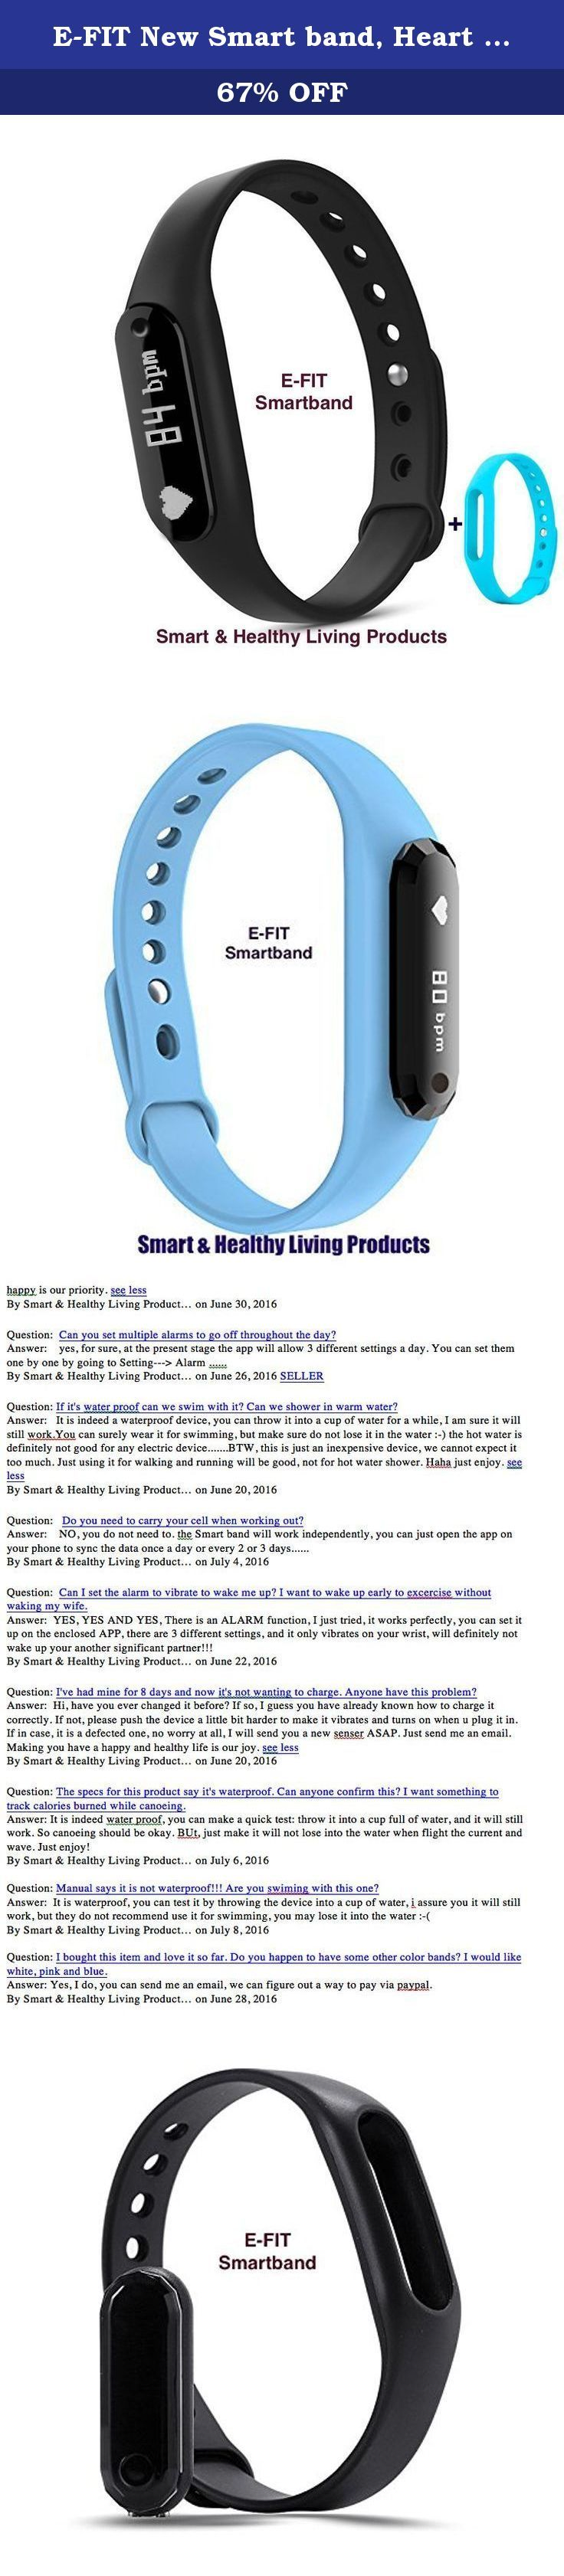 E-FIT New Smart band, Heart Rate Monitor, Step Tracker, Pedometer, Smart Bracelet, Fitness Tracker, Bluetooth Health Smartband for iOS & Android phones + One Free Color Band (Black-Blue). Specification: Display: 0.69 inch OLED Battery capacity: 45mAh Work time: 7-10 days (without constant HR testing) Batteries Type: Lithium Polymer Input voltage: 5.0V Waterproof: IP65 (please NOT wear for HOT-WATER showering!) Heart rate sensor: Optical heart rate sensor (can turn ON/OFF) Adjustable…